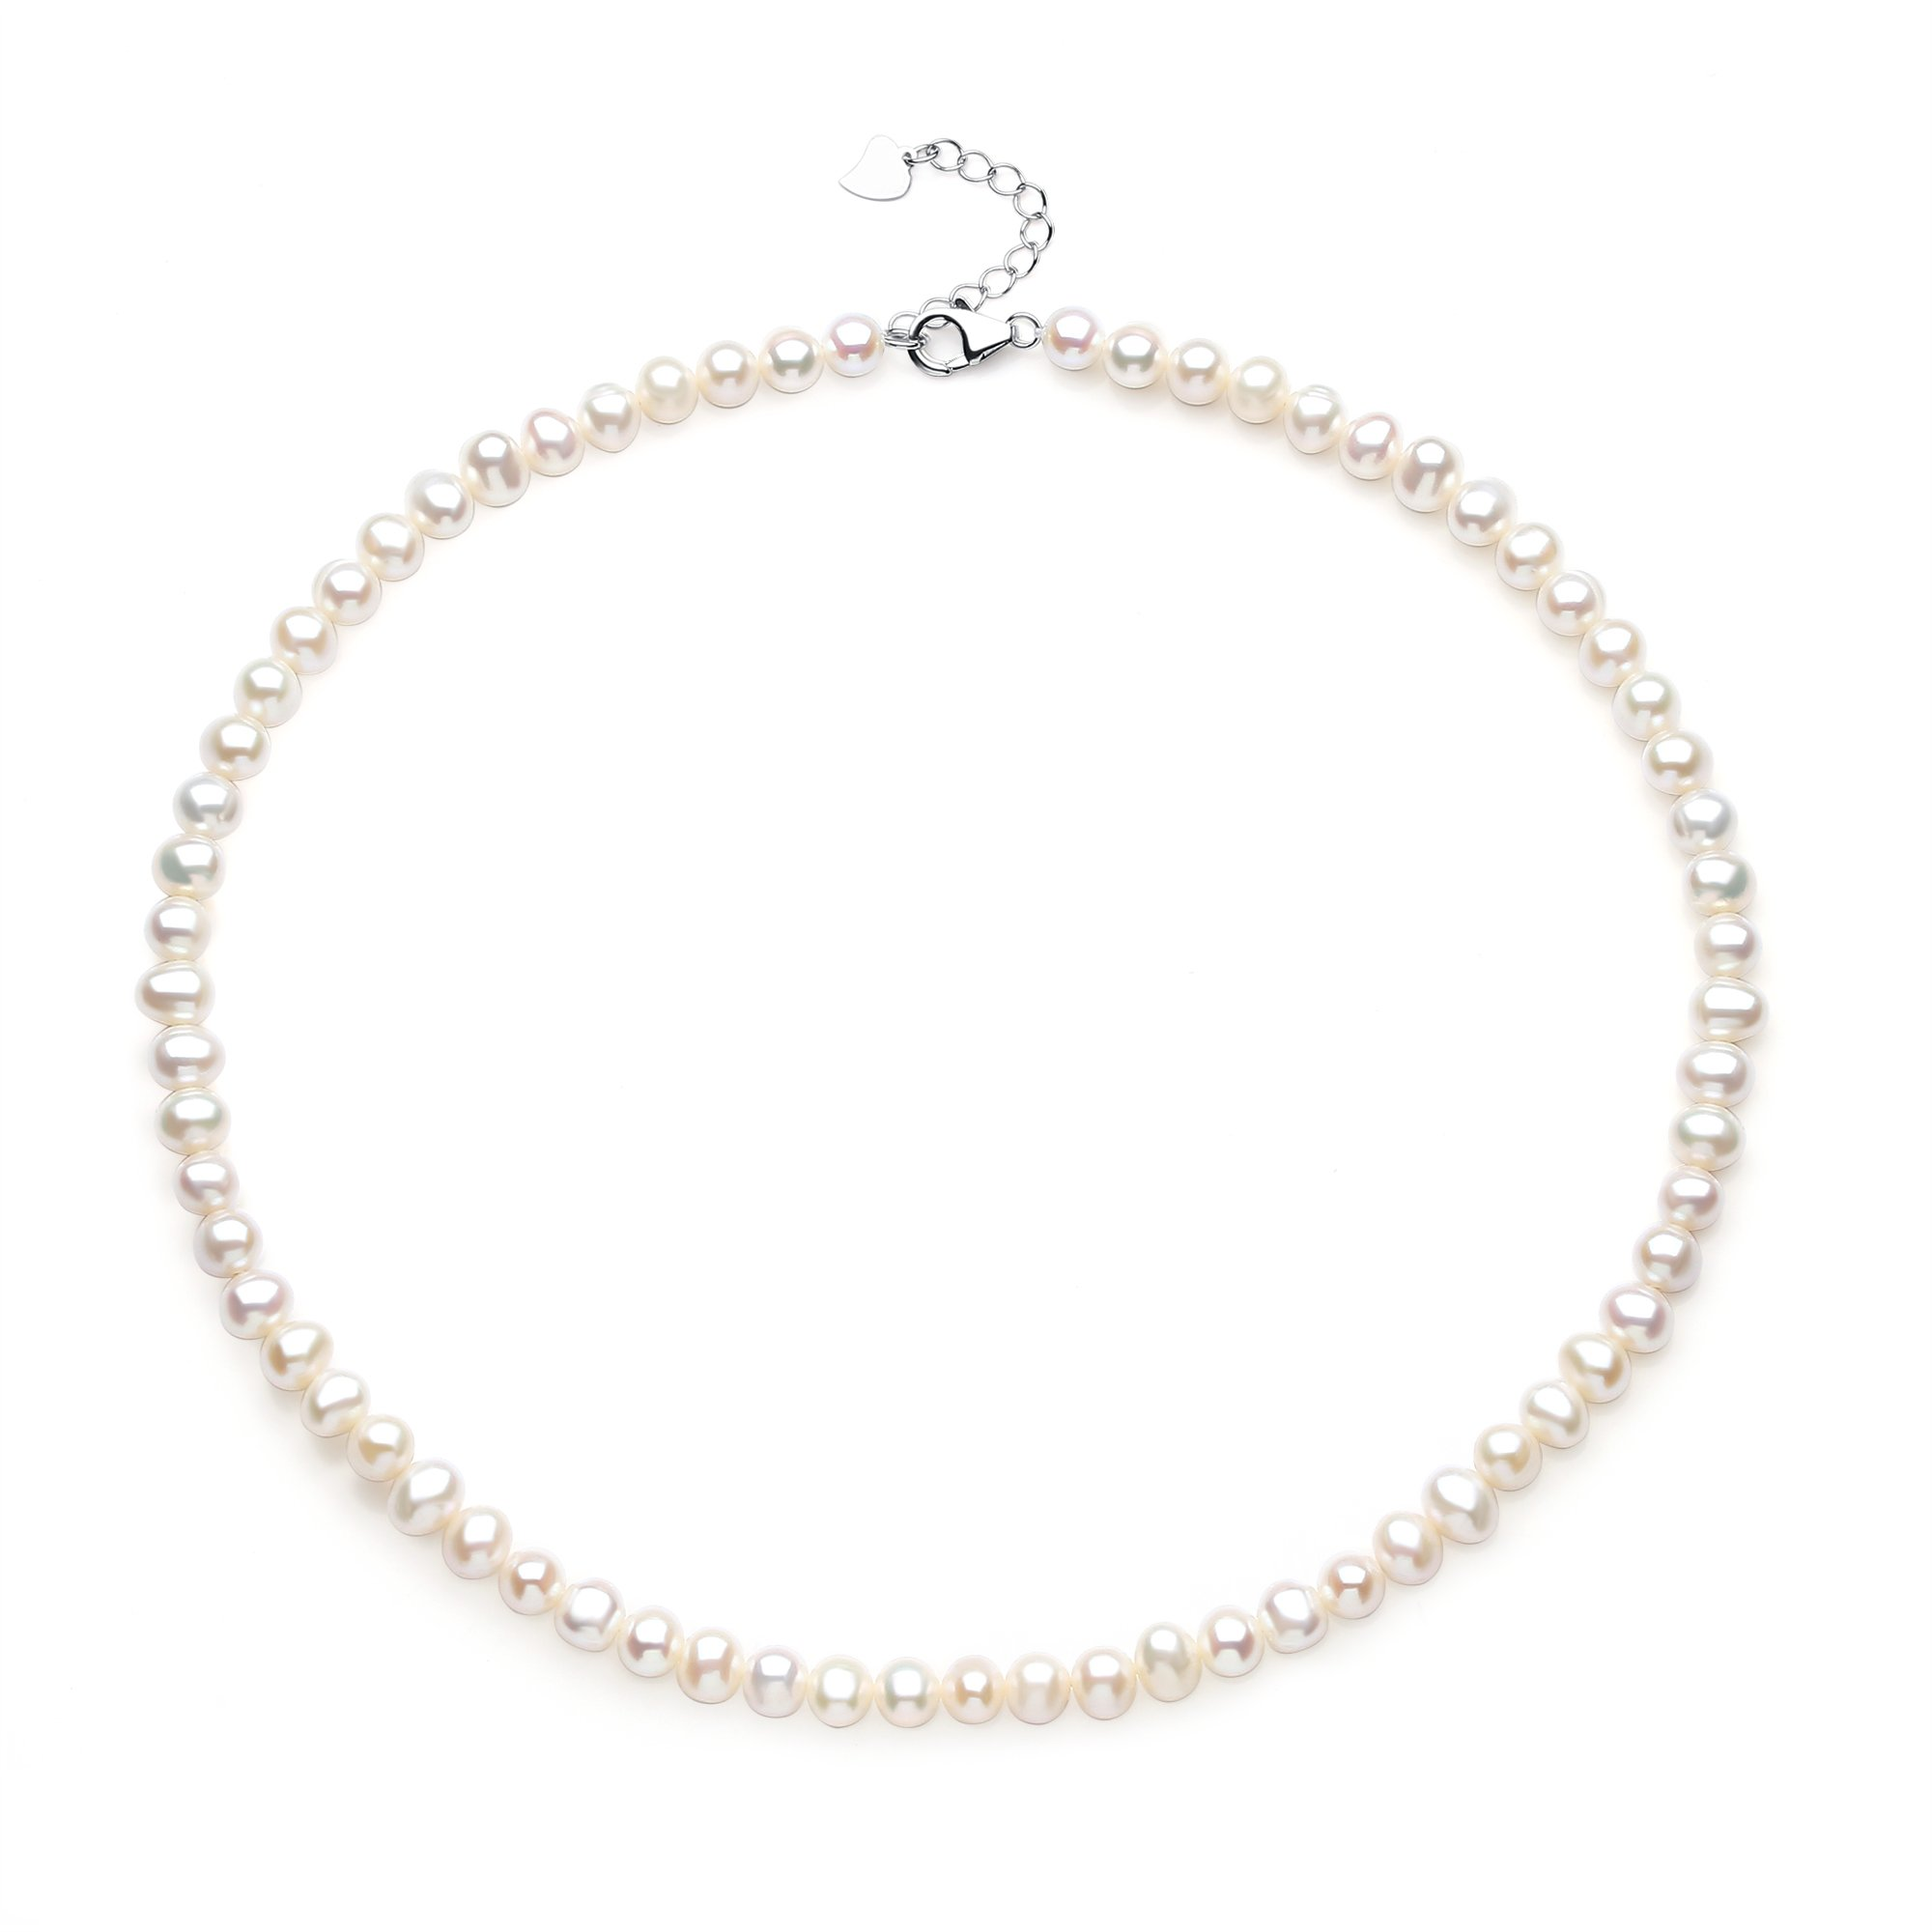 Sterling Silver Oval White 5.5-6 mm Freshwater Cultured Pearl Necklace Strand